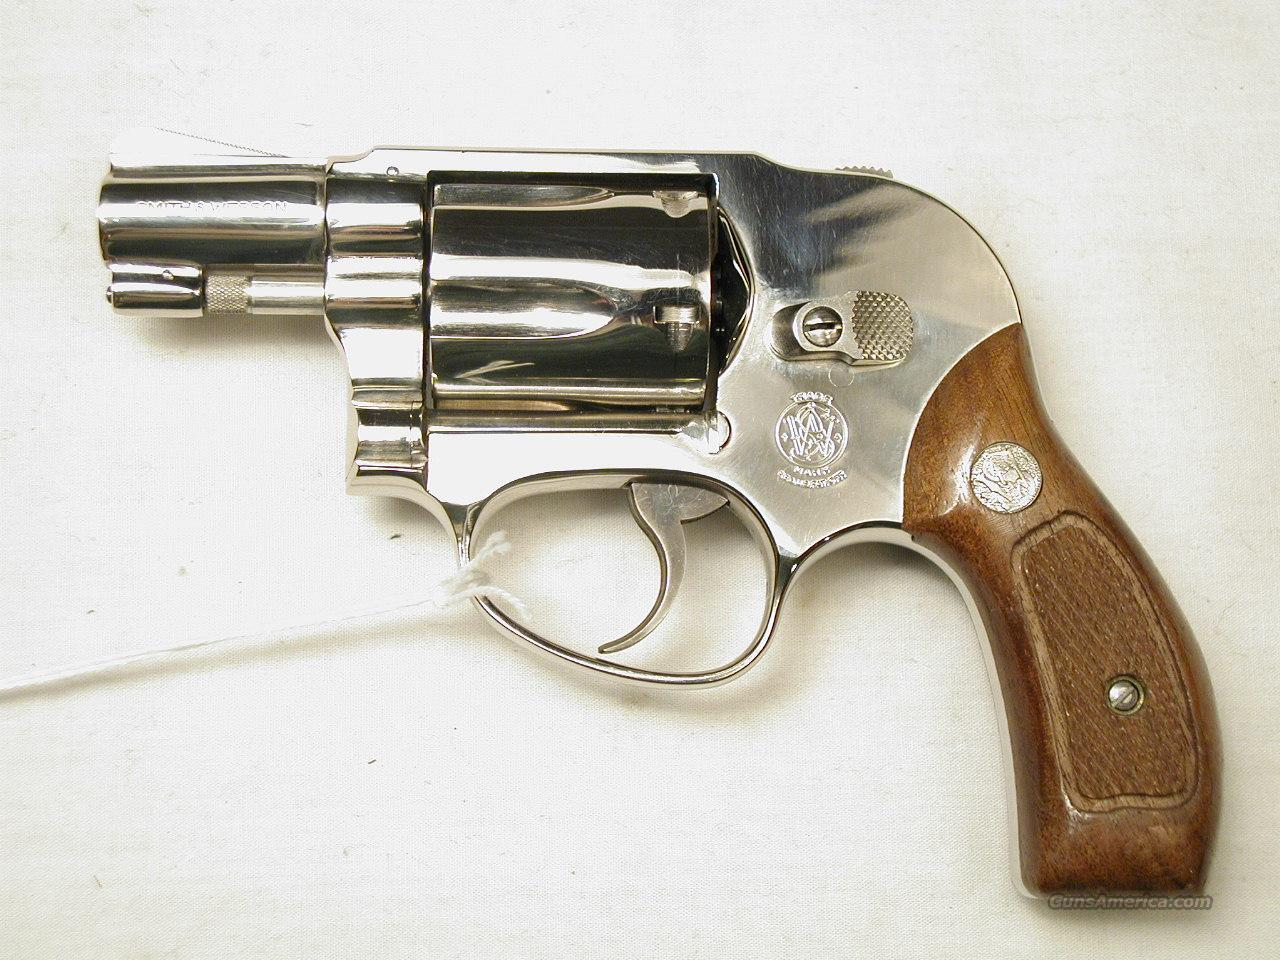 SMITH & WESSON M 38 AIRWEIGHT NICKEL  Guns > Pistols > Smith & Wesson Revolvers > Pocket Pistols